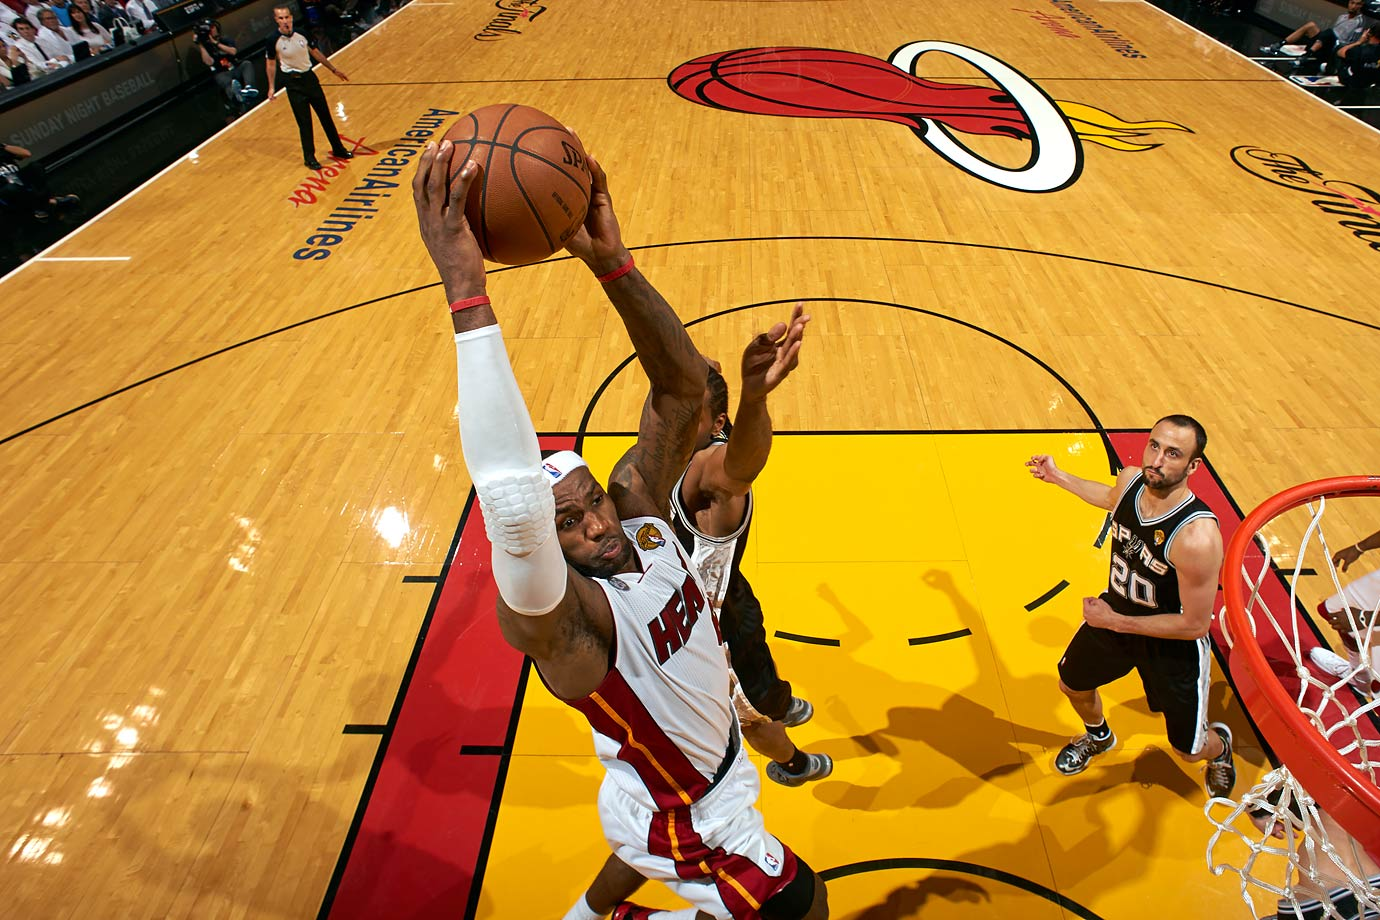 With the Heat facing elimination, LeBron James shook off a slow first half to score 16 fourth-quarter points, including a key three-pointer with 20 seconds remaining in regulation. He finished with his second triple-double of the 2013 Finals, tallying 32 points (on 11-for-26 shooting), 11 assists and 10 rebounds in the Heat's 103-100 OT victory over the Spurs.